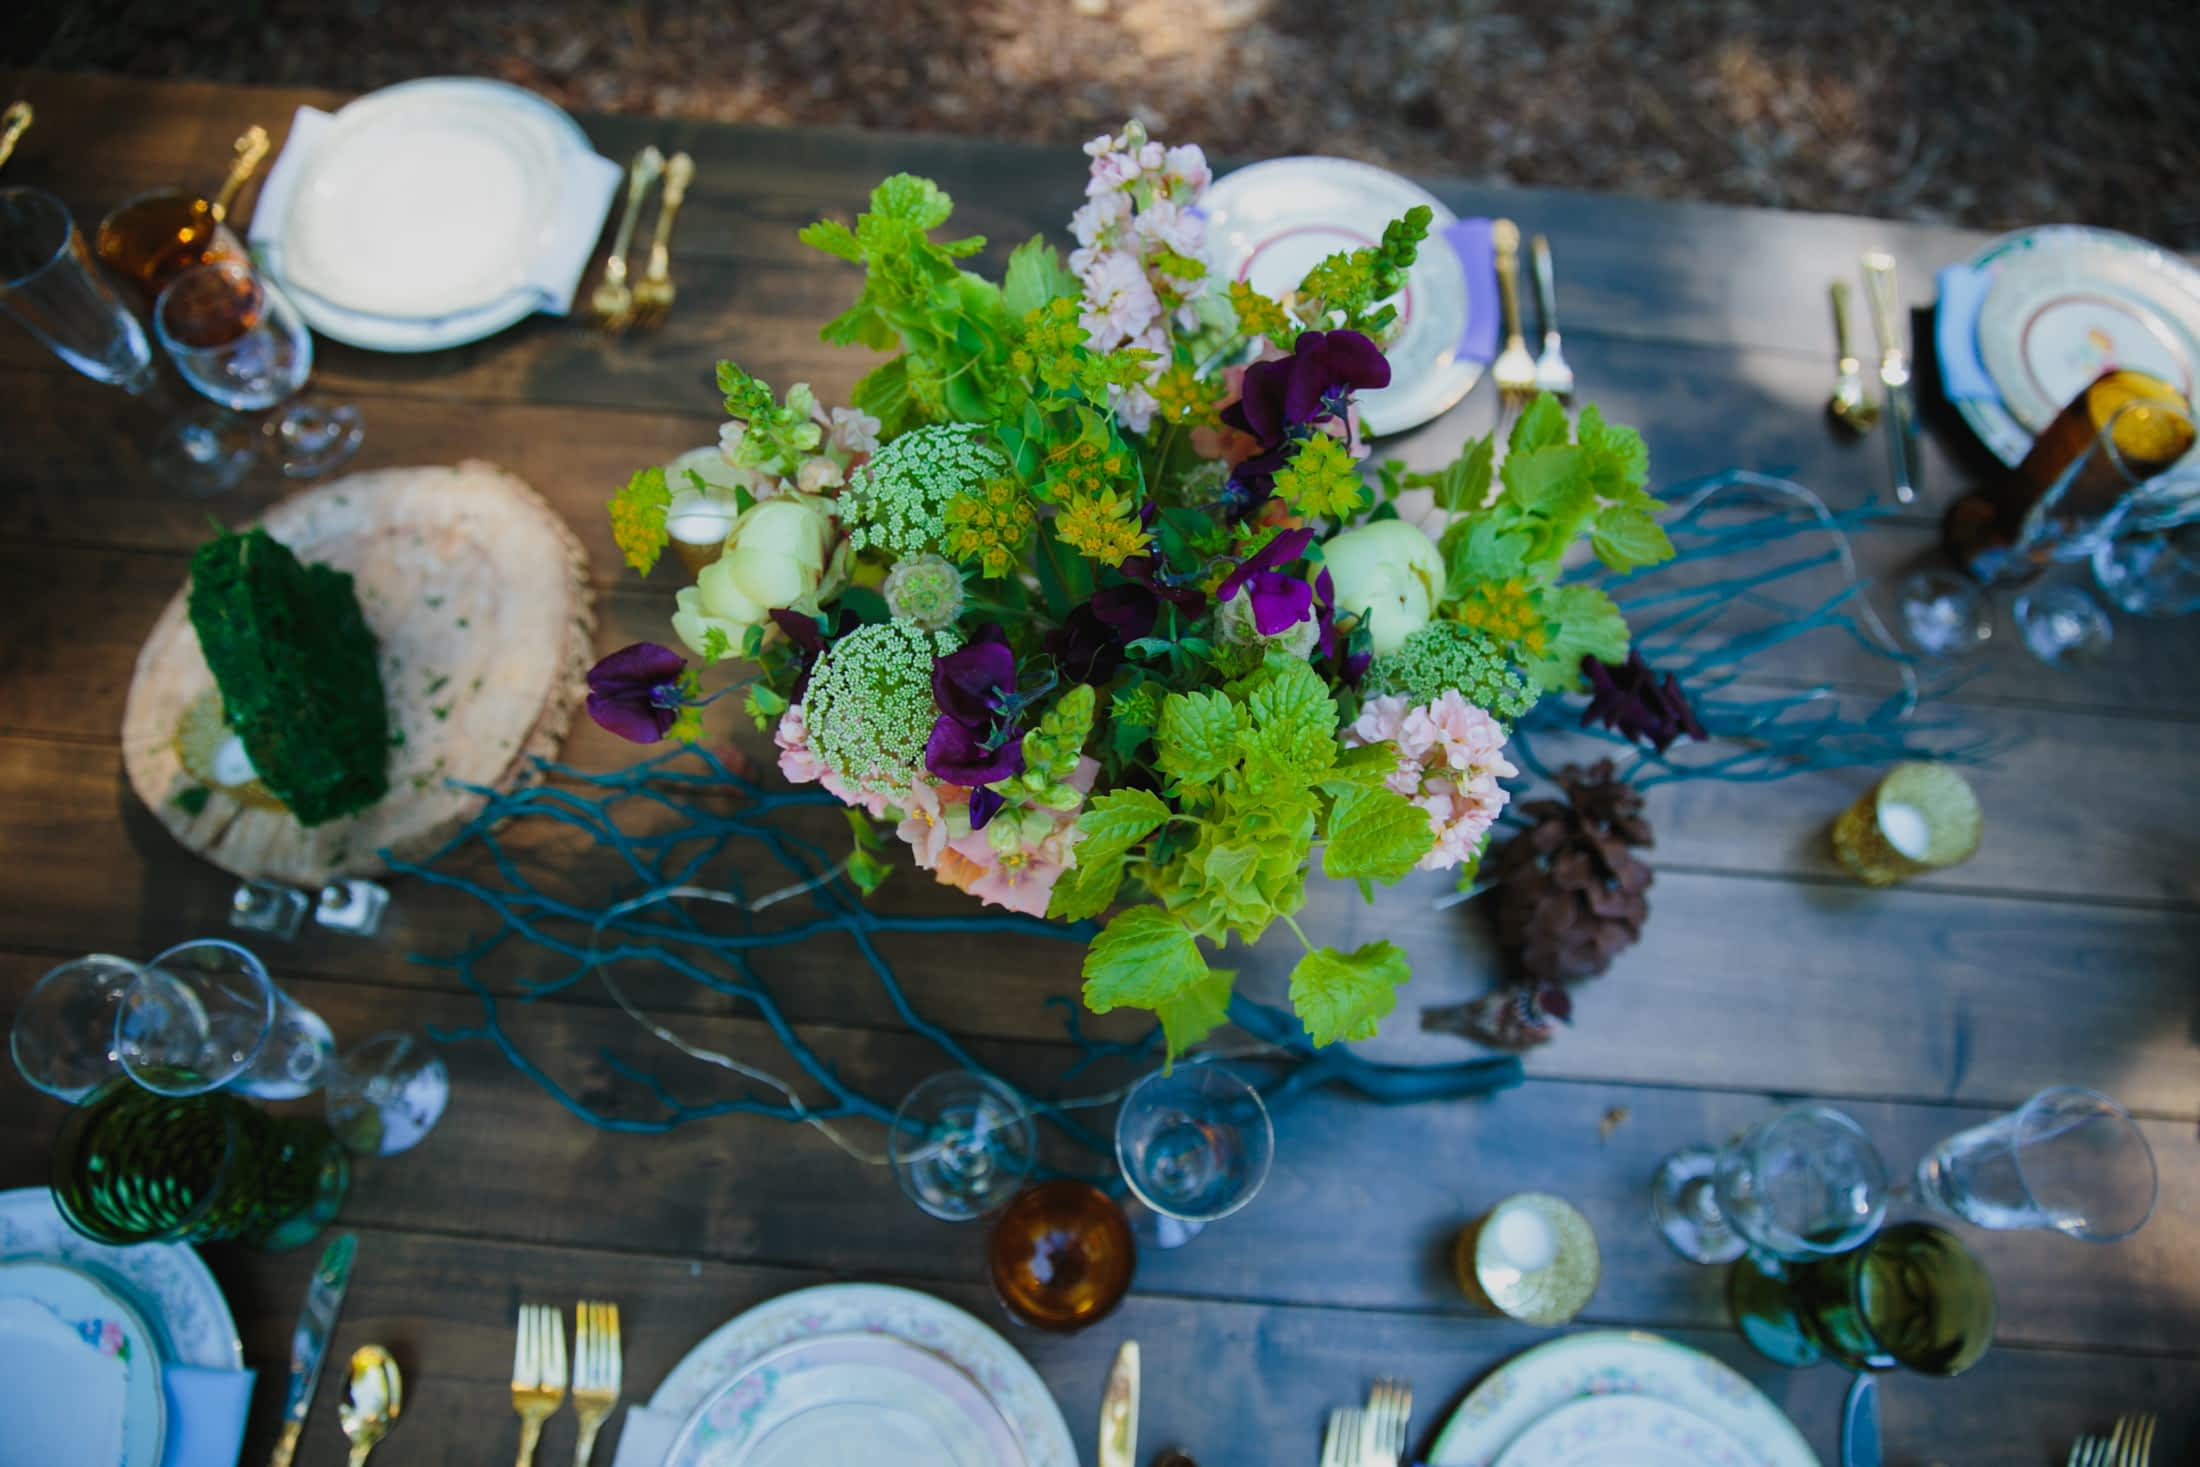 Looking at the table of flowers and place-settings from above.